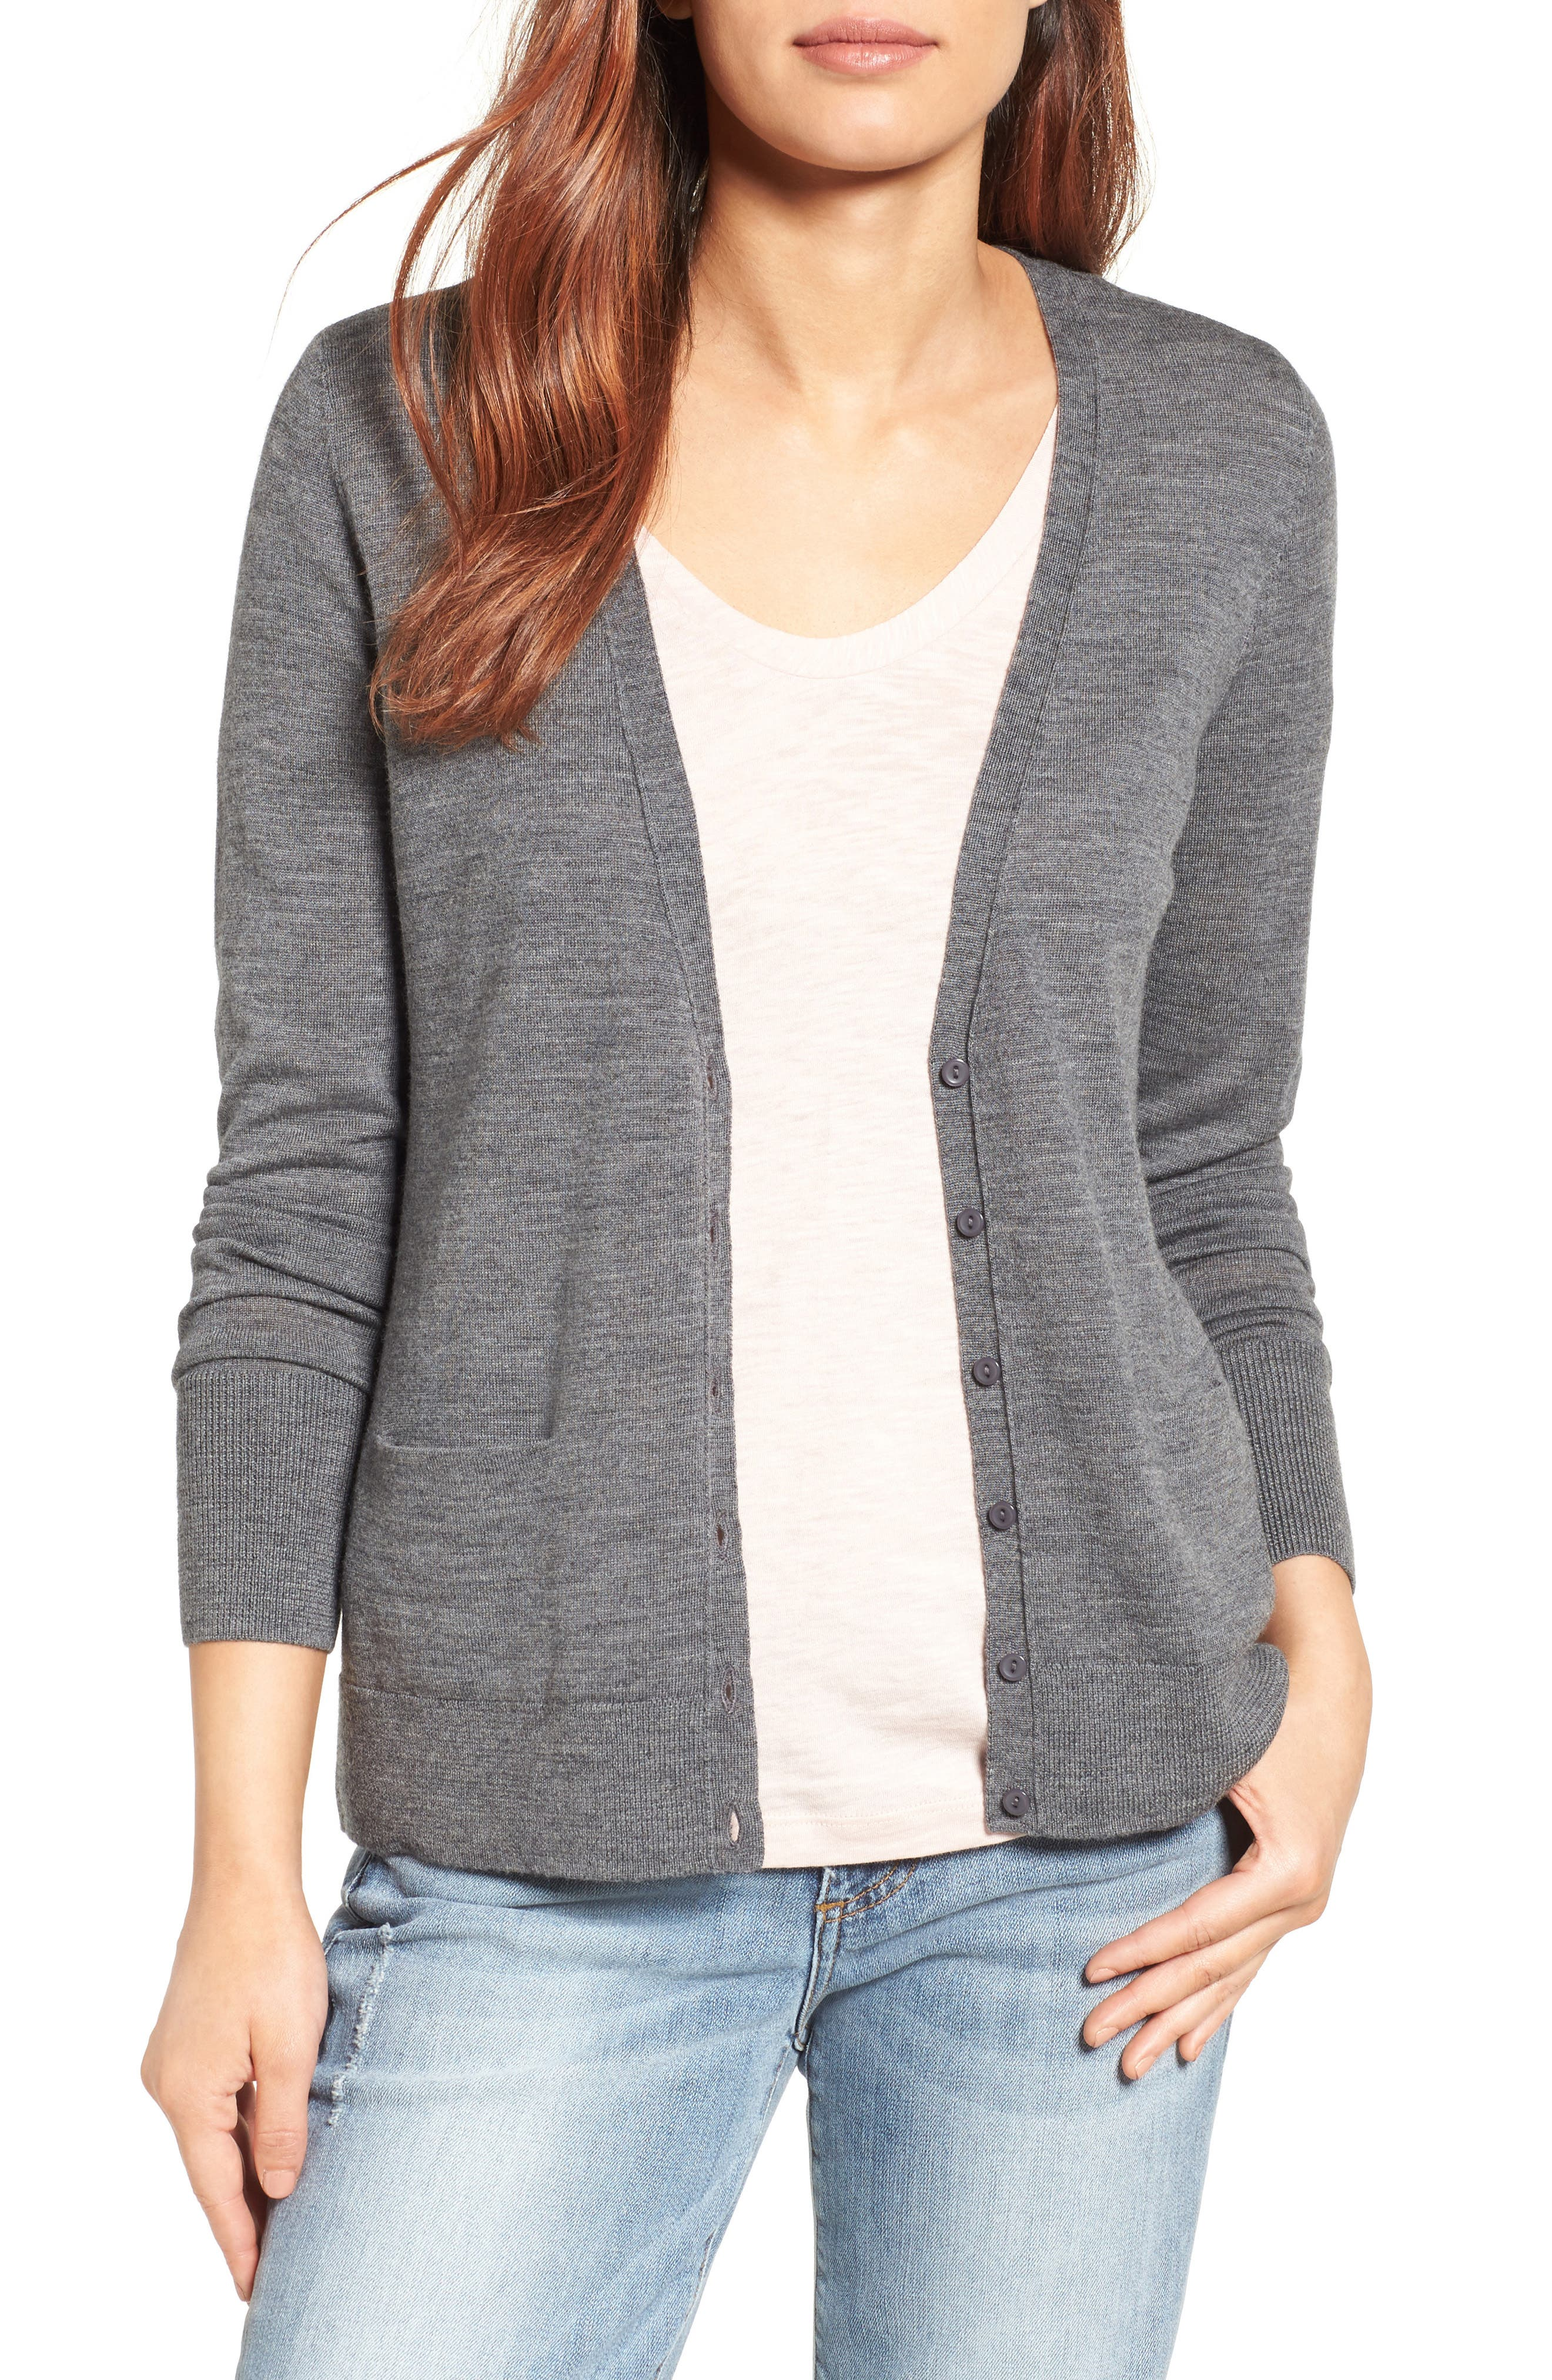 Alternate Image 1 Selected - Halogen® V-Neck Merino Wool Cardigan (Regular & Petite)